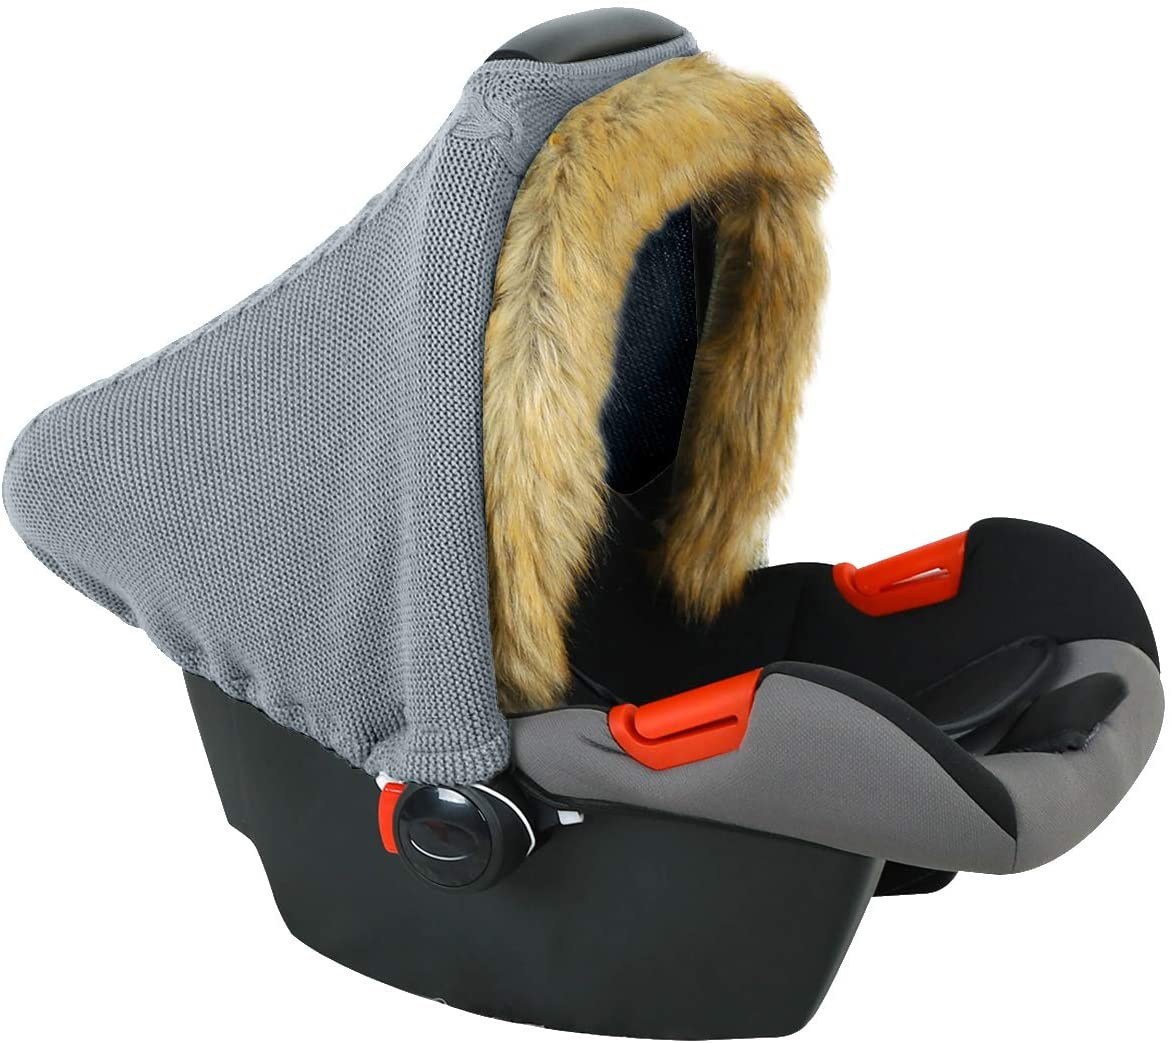 NCONCO Baby Car Seat Cover with Faux Fur Hem Knitted Stretchy Infant Stroller Cover Baby Carseat Canopy